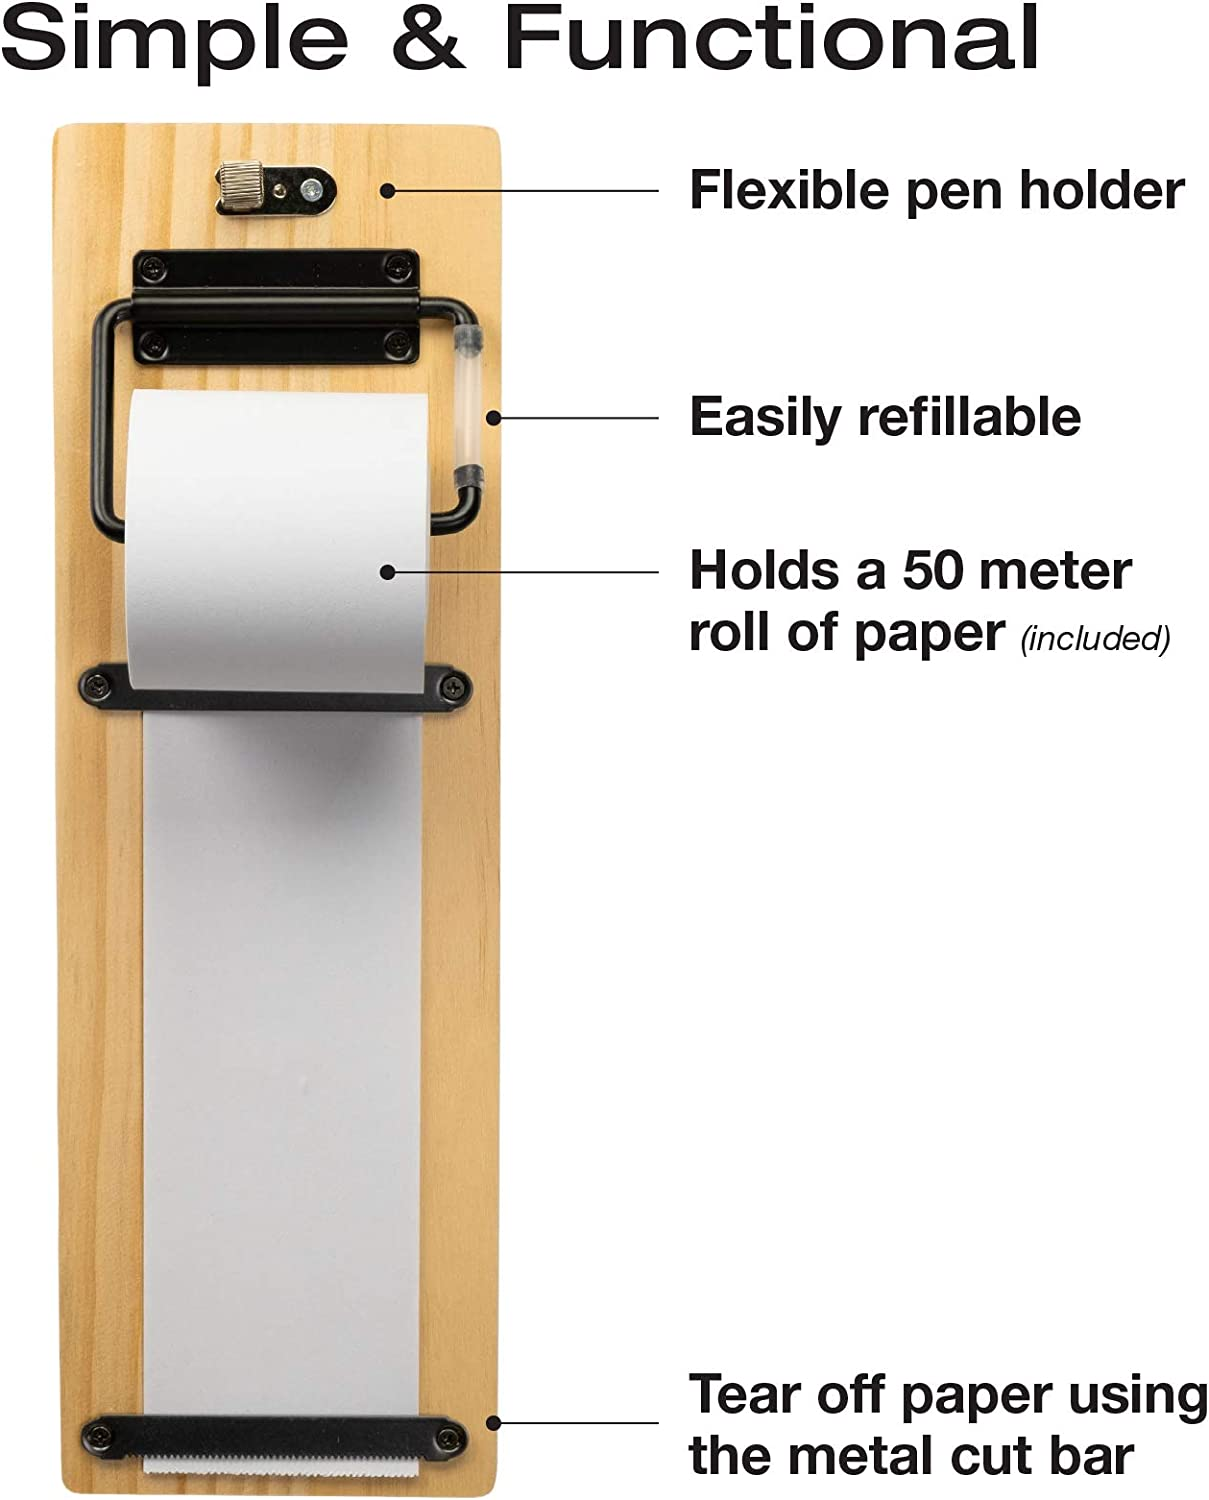 Wall Mounted Note Paper Dispenser with a 160 Foot roll of Paper Included